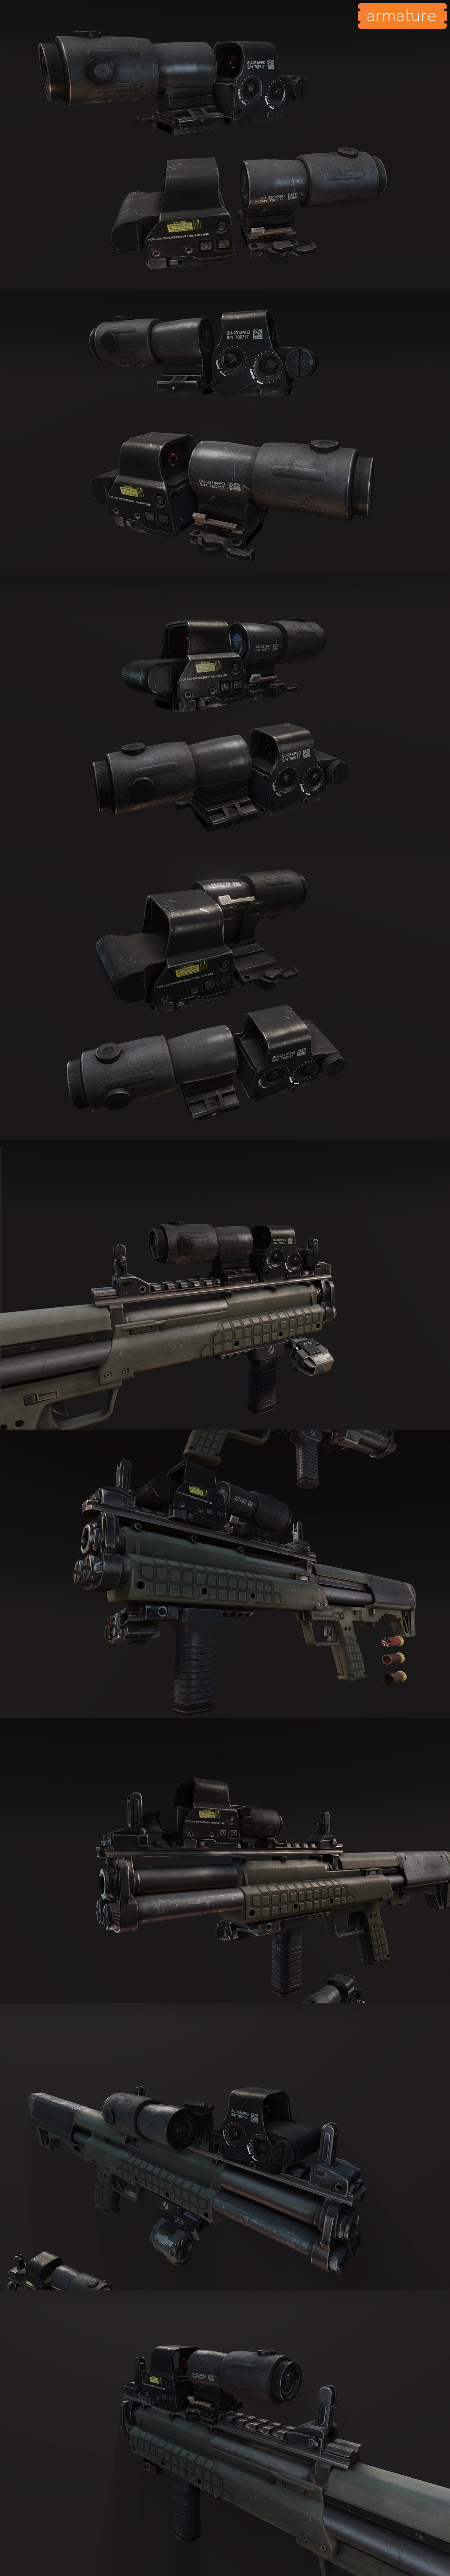 eotech_textured_high.jpg